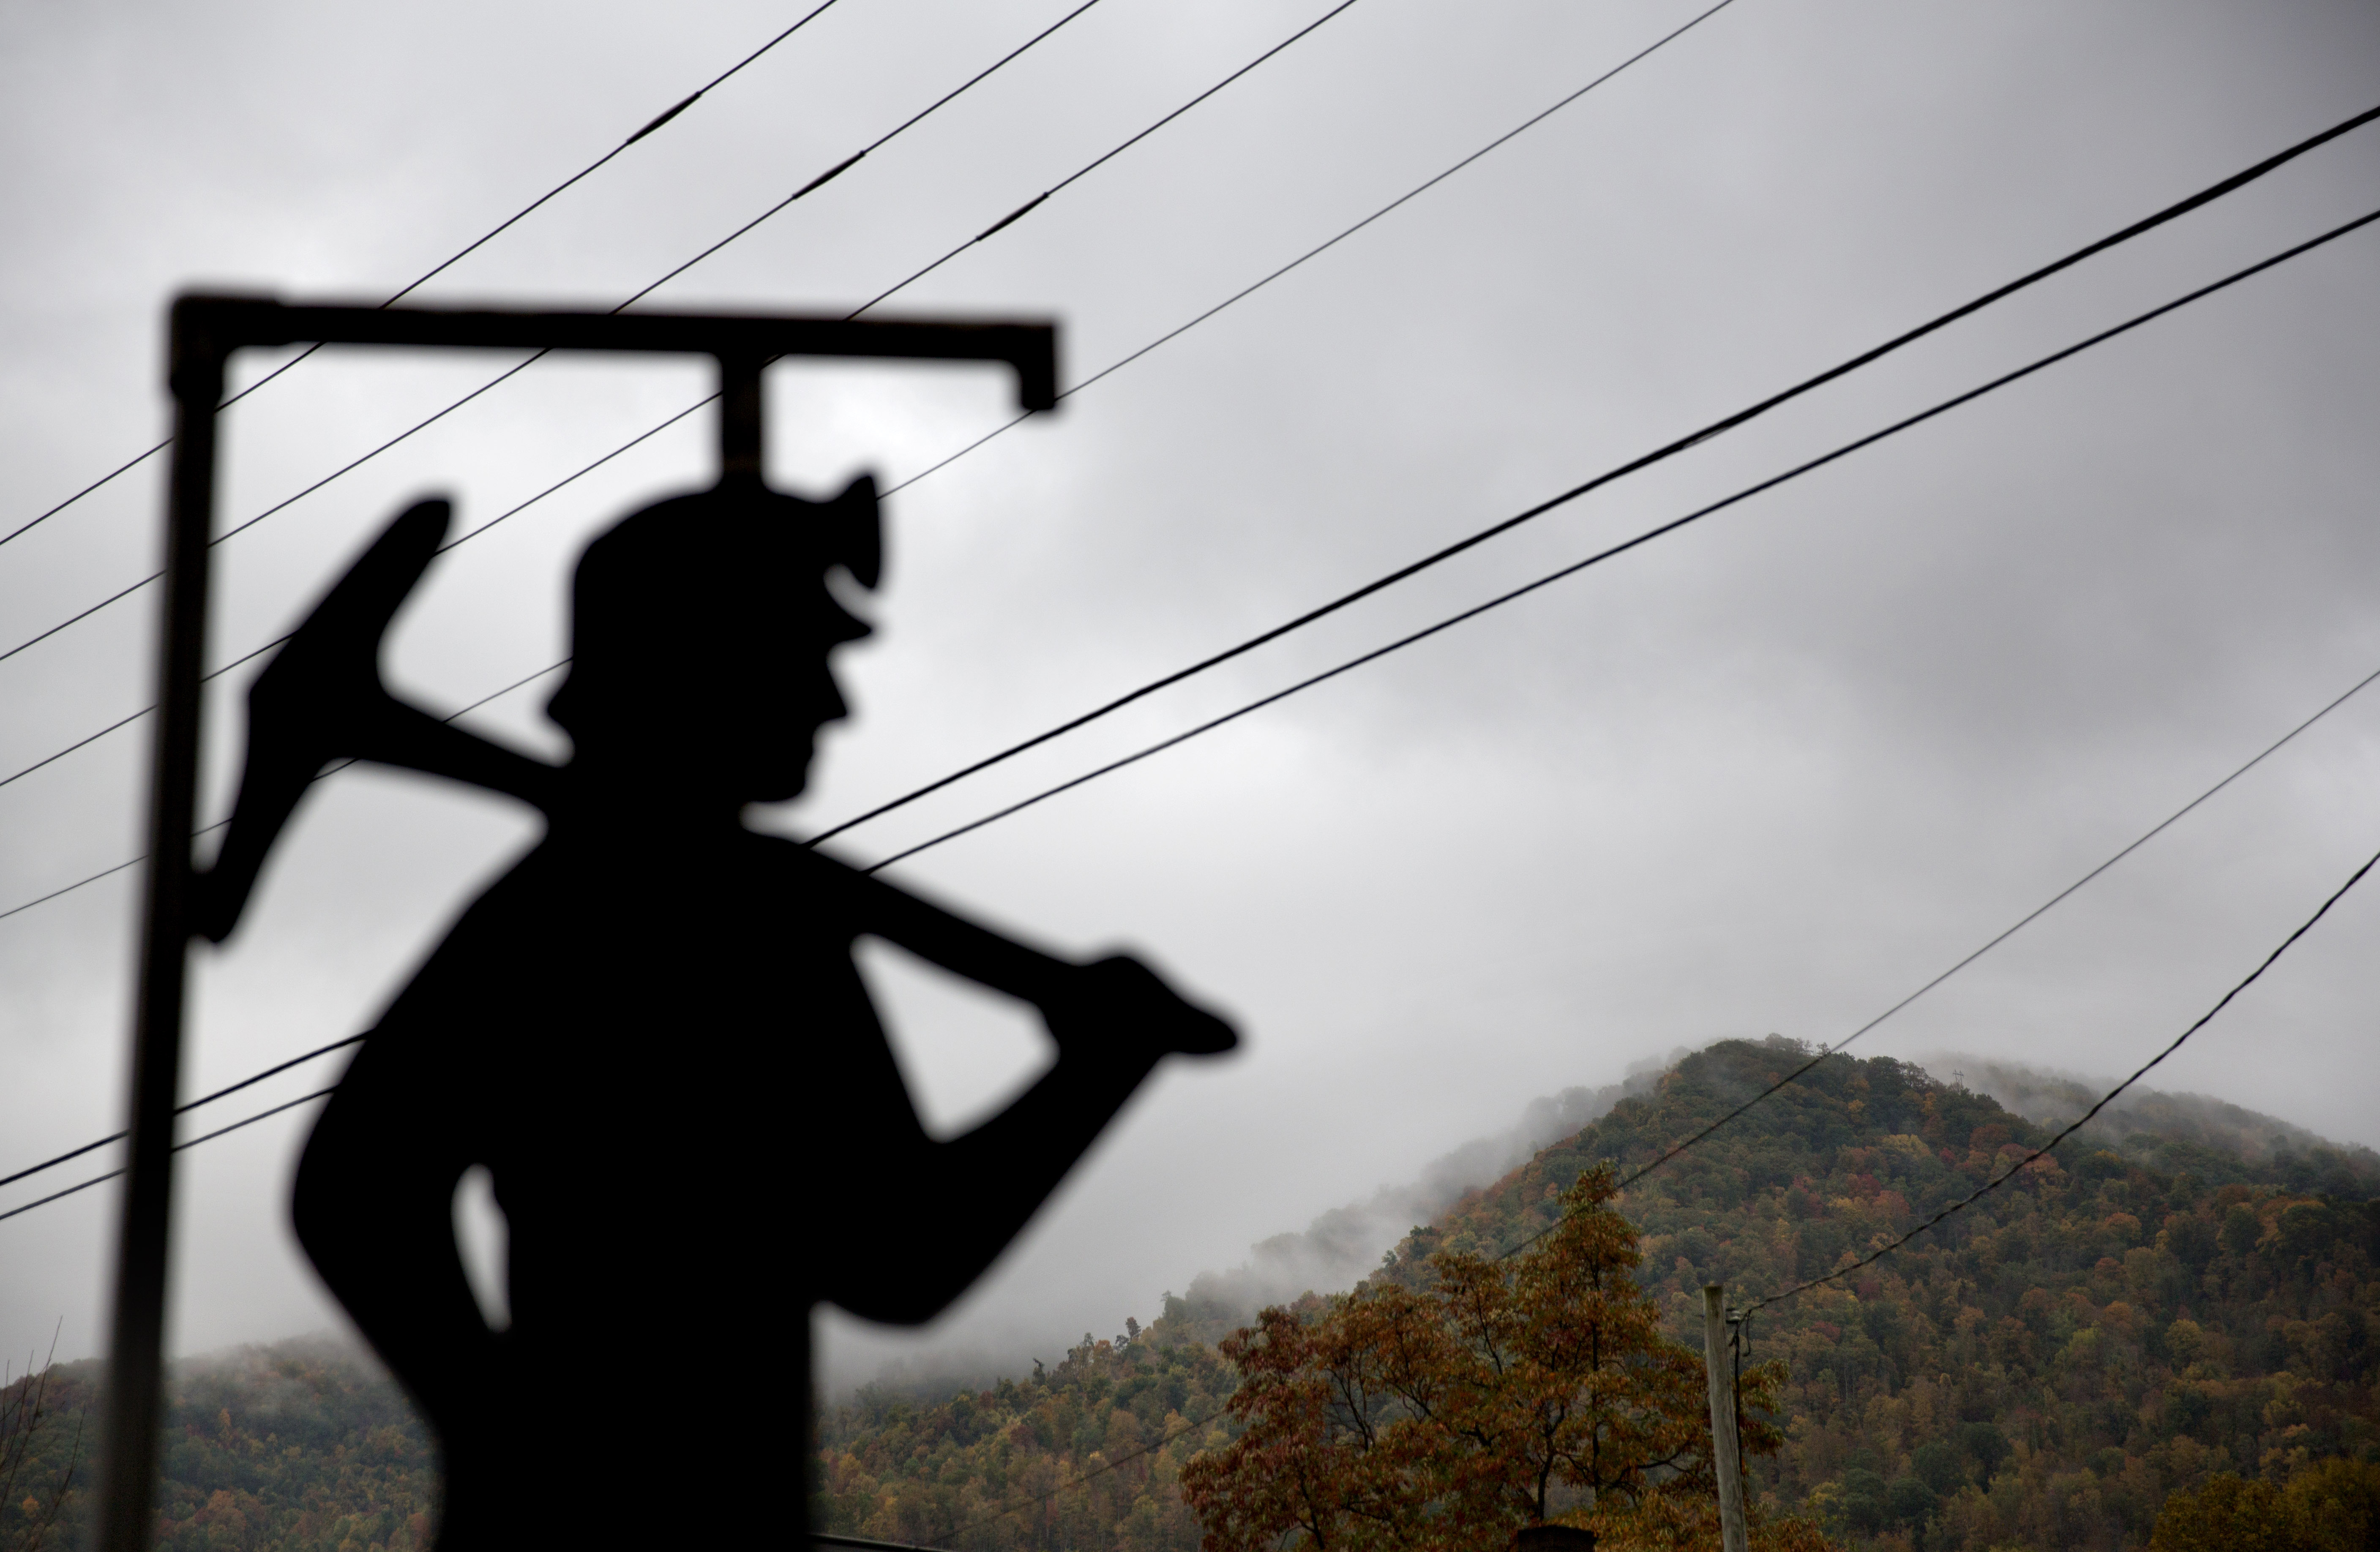 Nuclear Power Kentucky FILE - In this Oct. 16, 2014 file photo, fog hovers over a mountaintop as a cutout depicting a coal miner stands at a memorial to local miners killed on the job in Cumberland, Ky. The Republican-controlled Kentucky state legislature is on the cusp of lifting its decades-long moratorium on nuclear energy, a move unthinkable just three years ago in a state that has been culturally and economically dominated by coal. As the coal industry continues its slide, even Republican lawmakers are acknowledging a need for alternatives. (AP Photo/David Goldman, File)